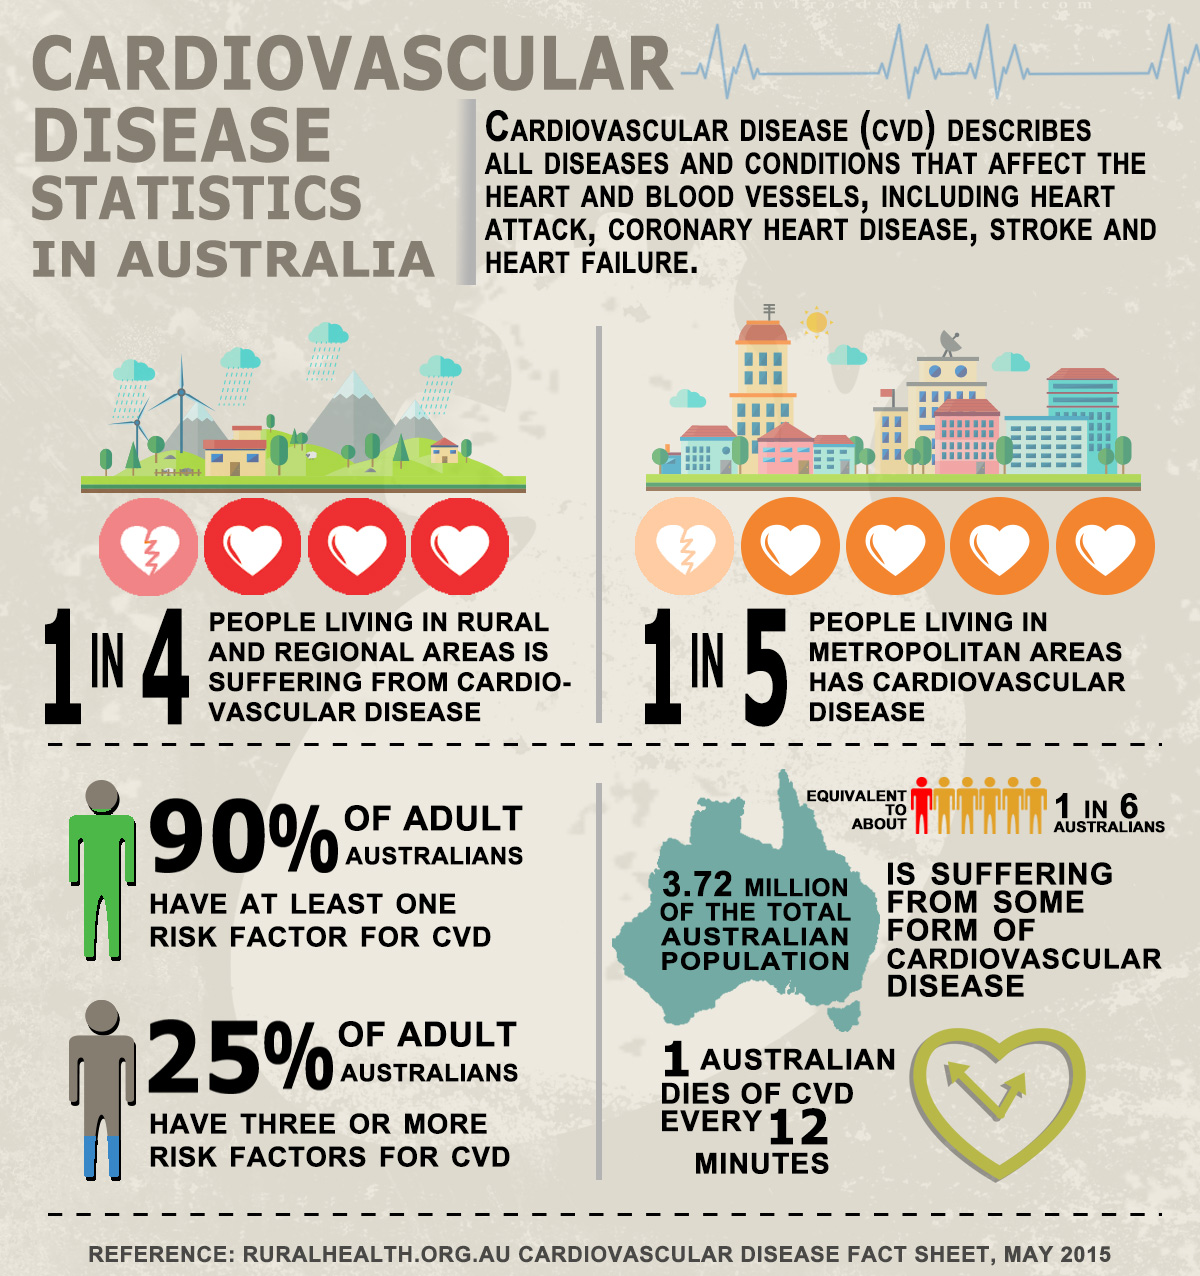 Prevalence Heart Disease Cardiovascular Disease In Australia Fact Sheet Health